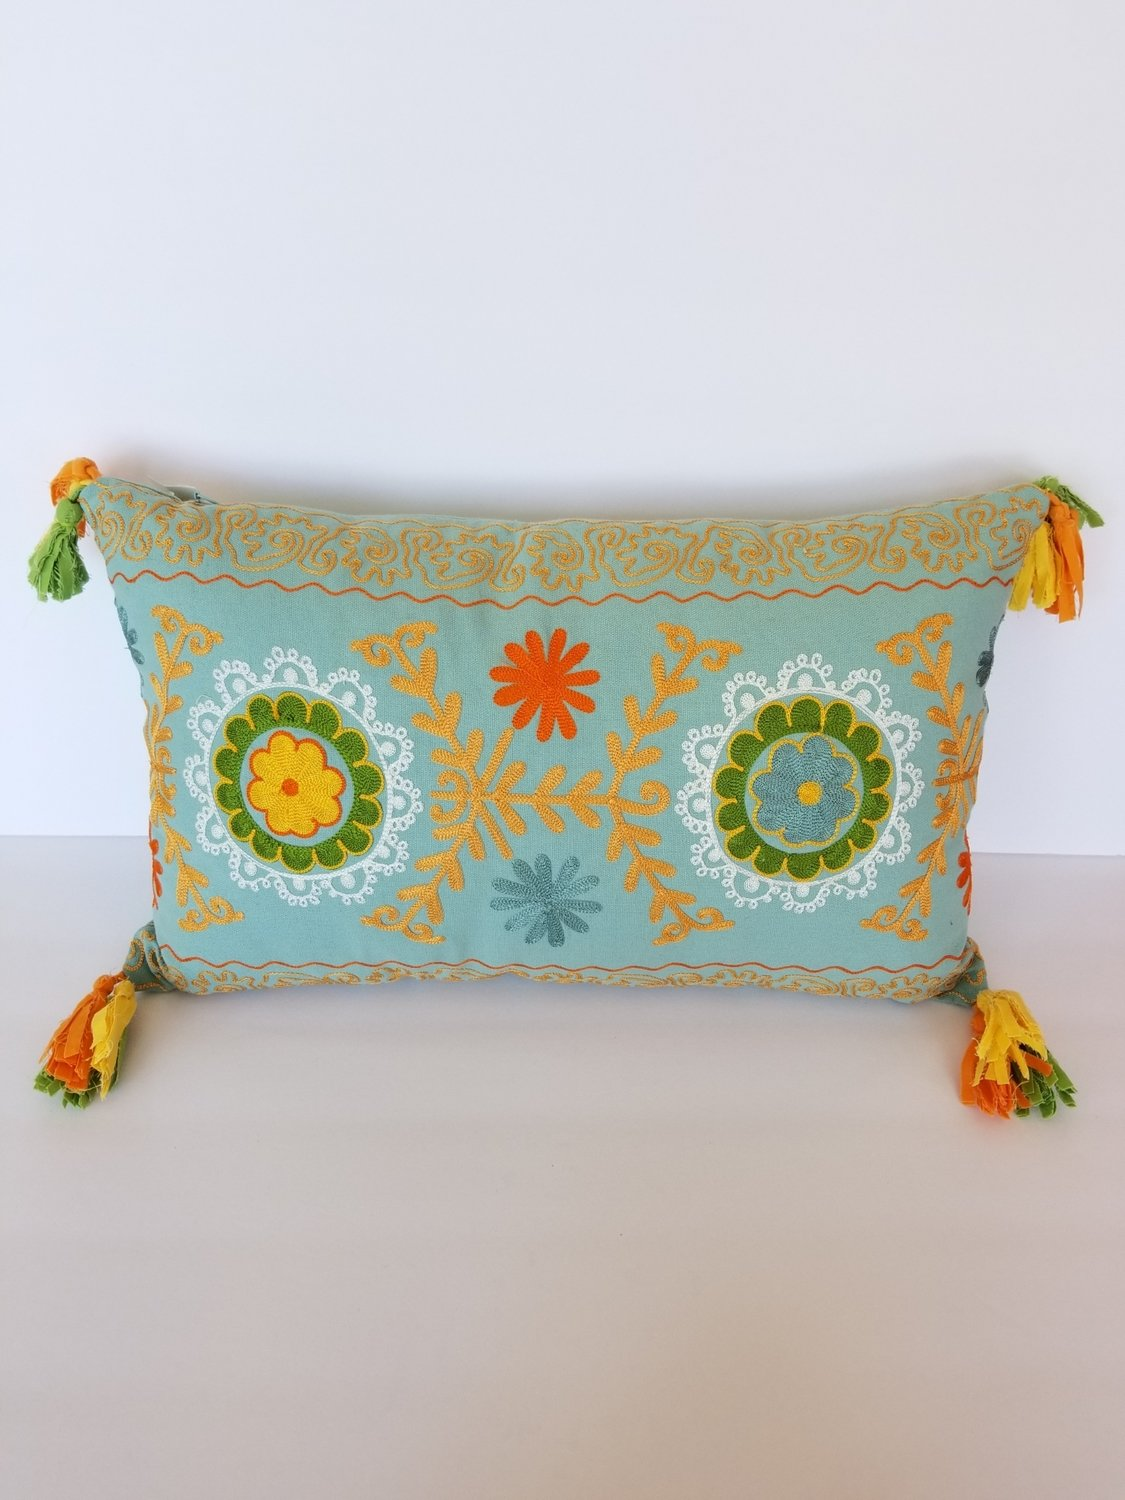 Embroidered Floral Pillows